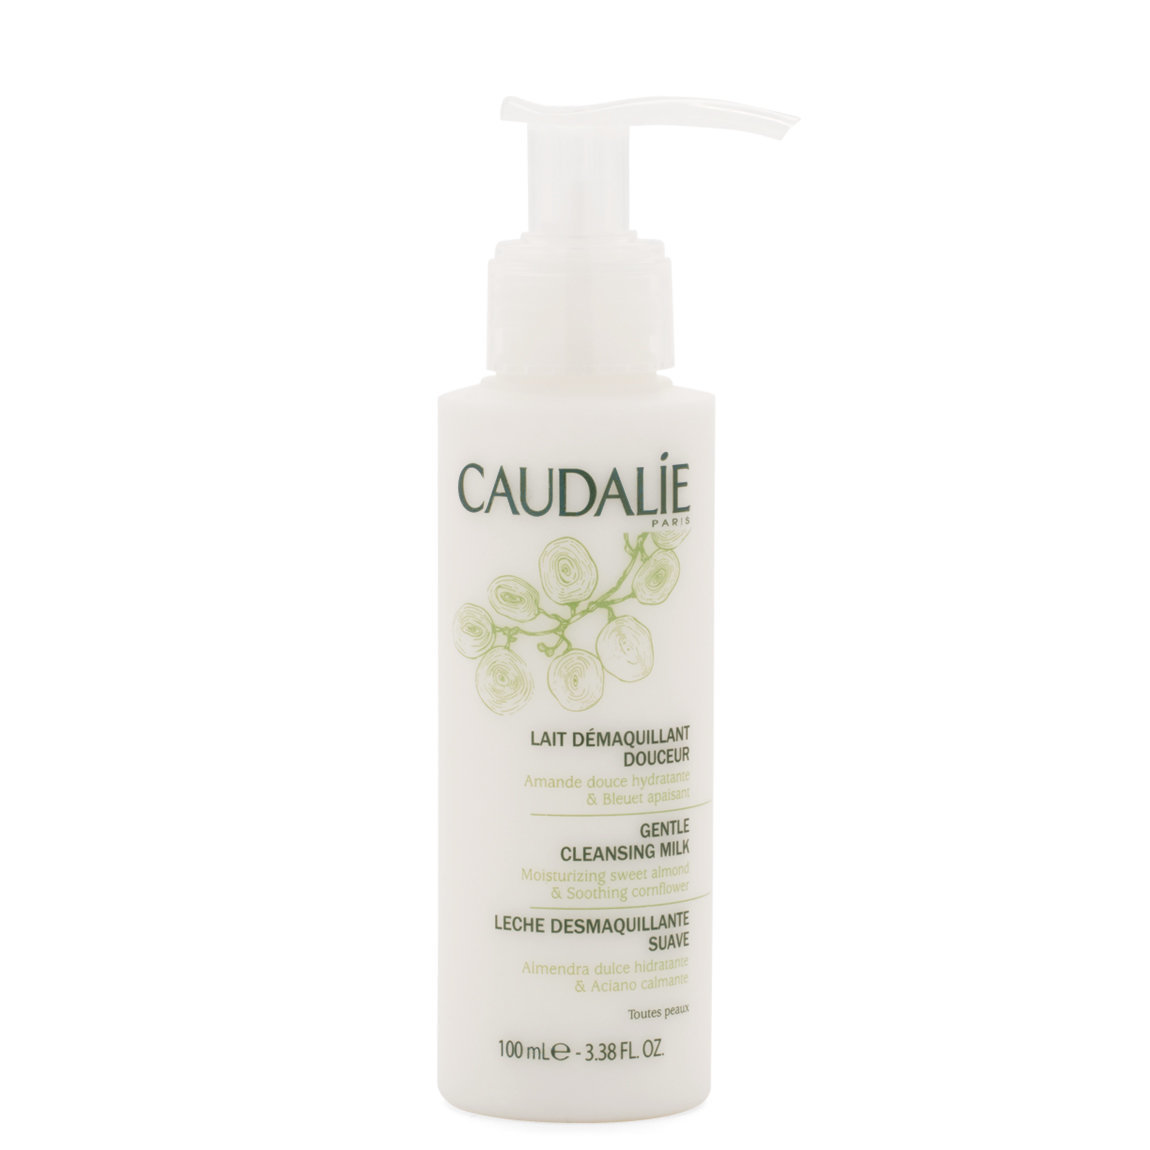 Gentle Cleansing Milk by Caudalie #5